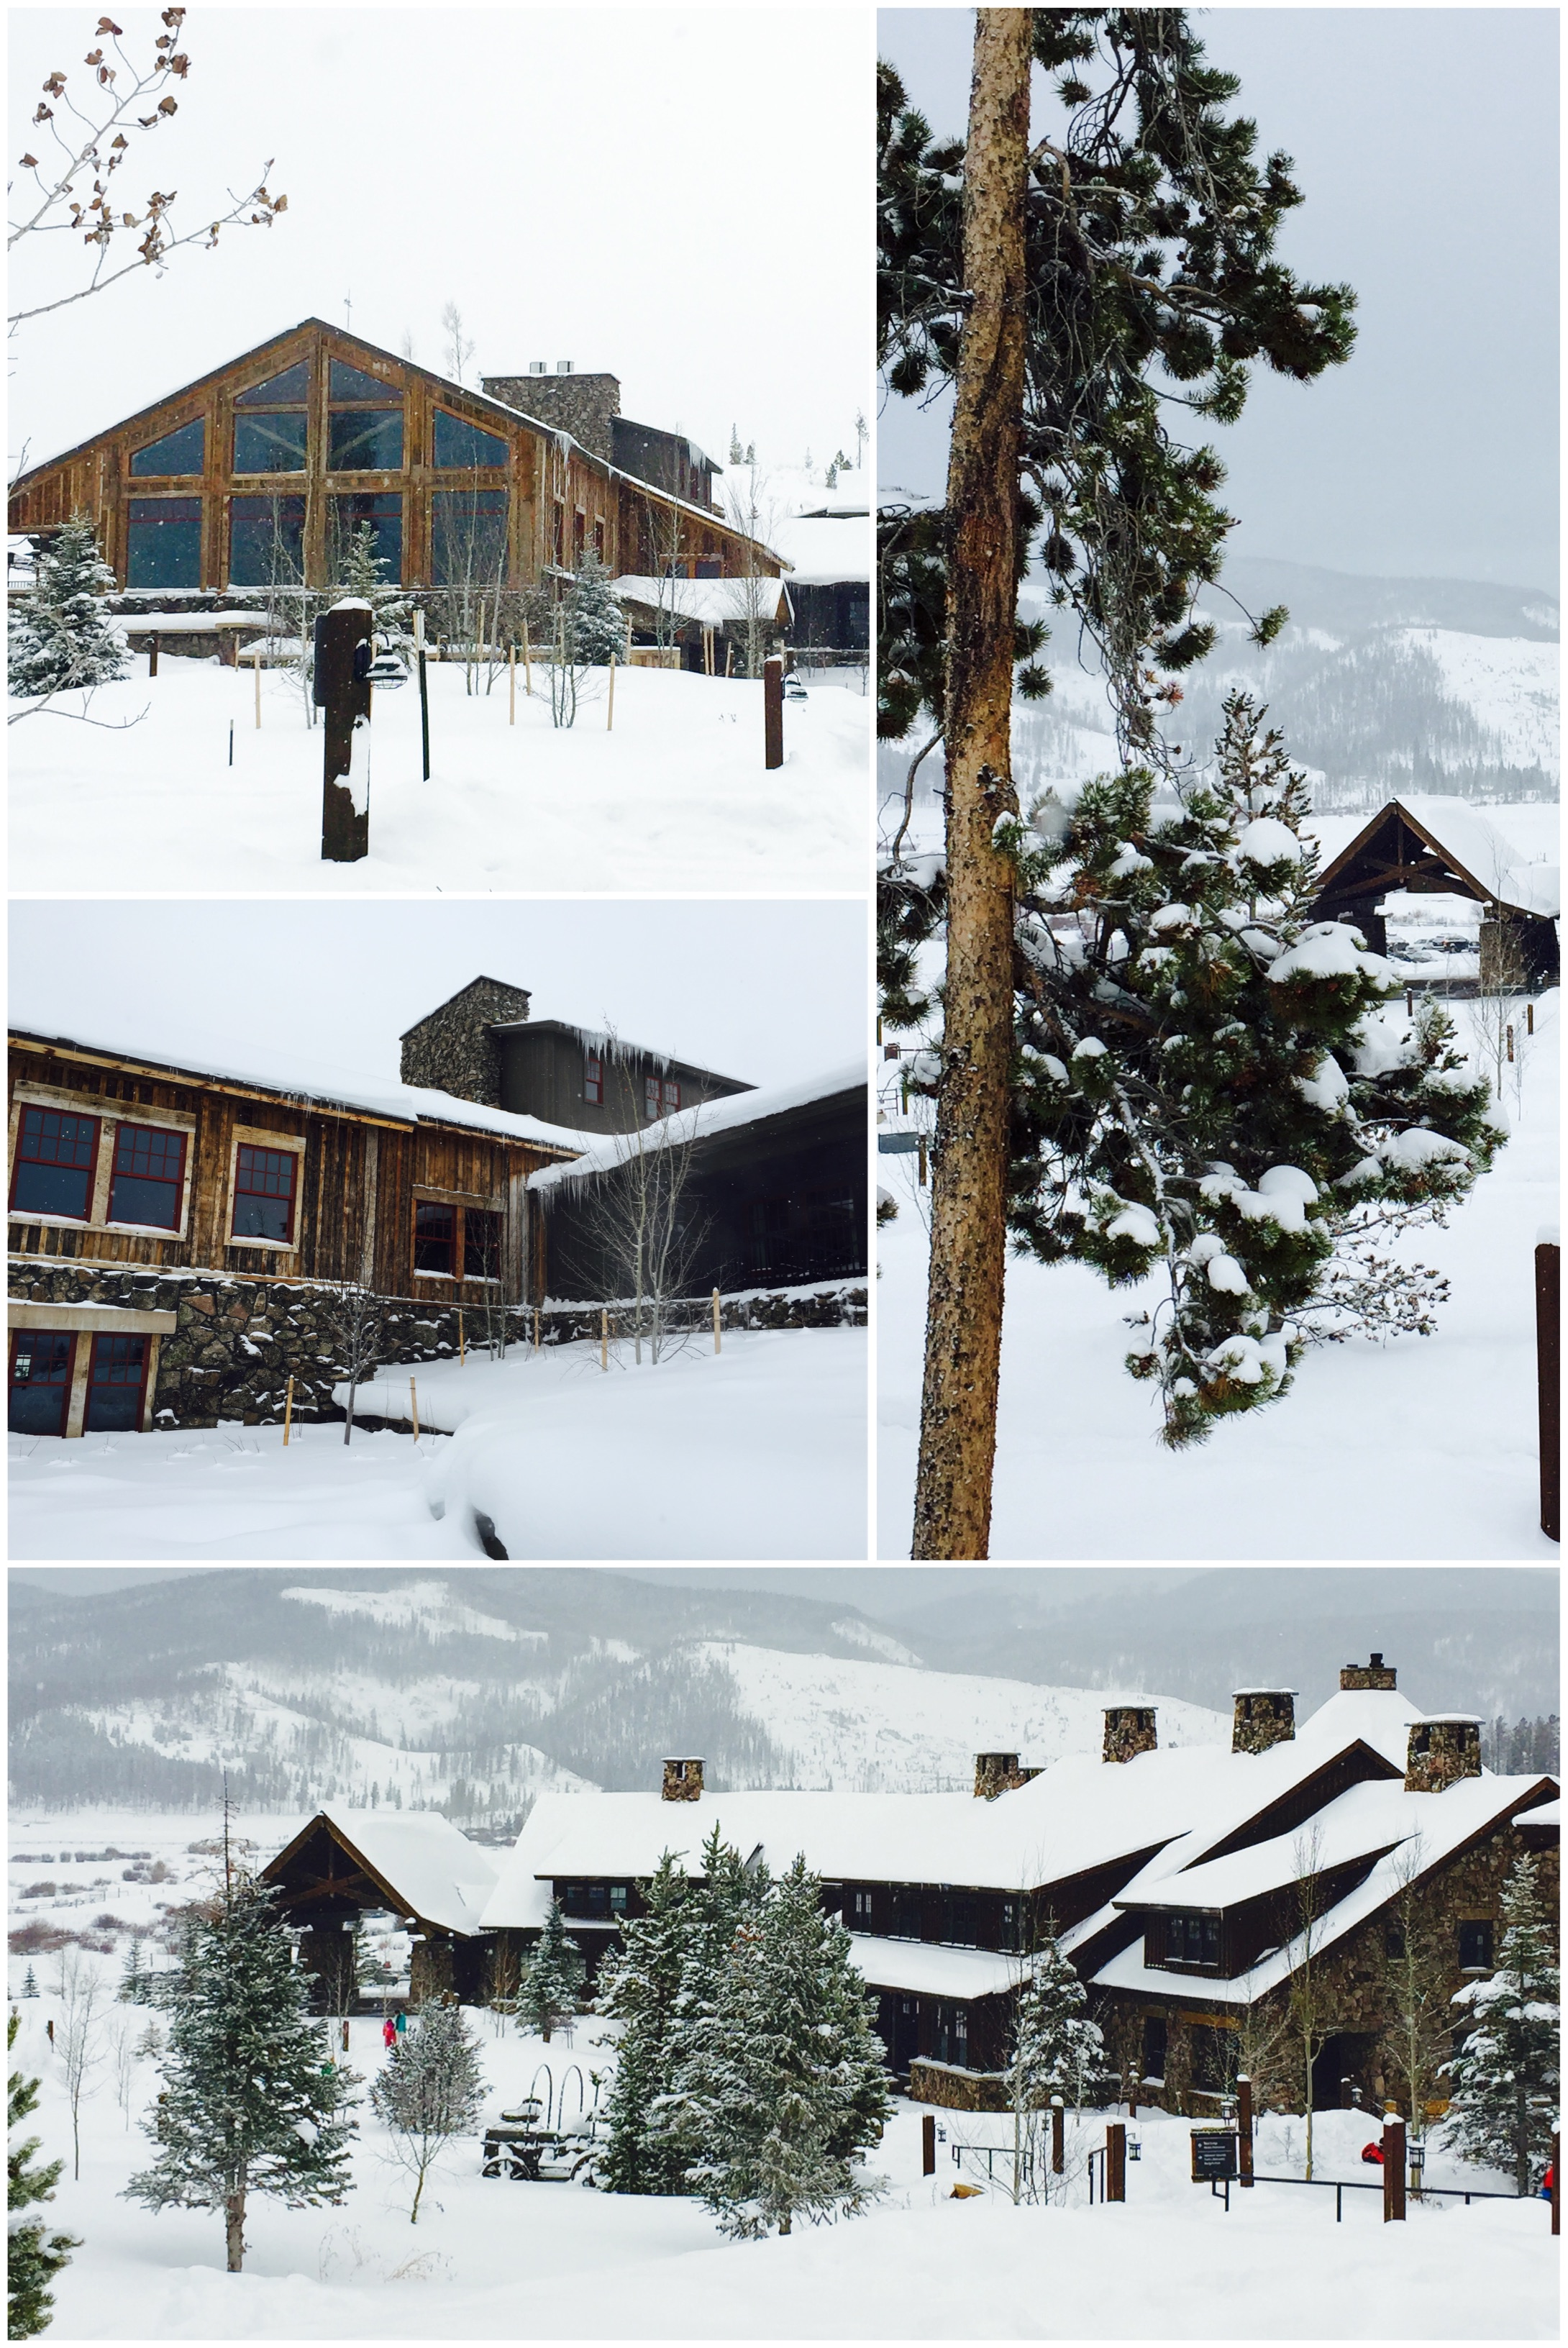 Weekenders: Winter Travel - Devil's Thumb Ranch Spa